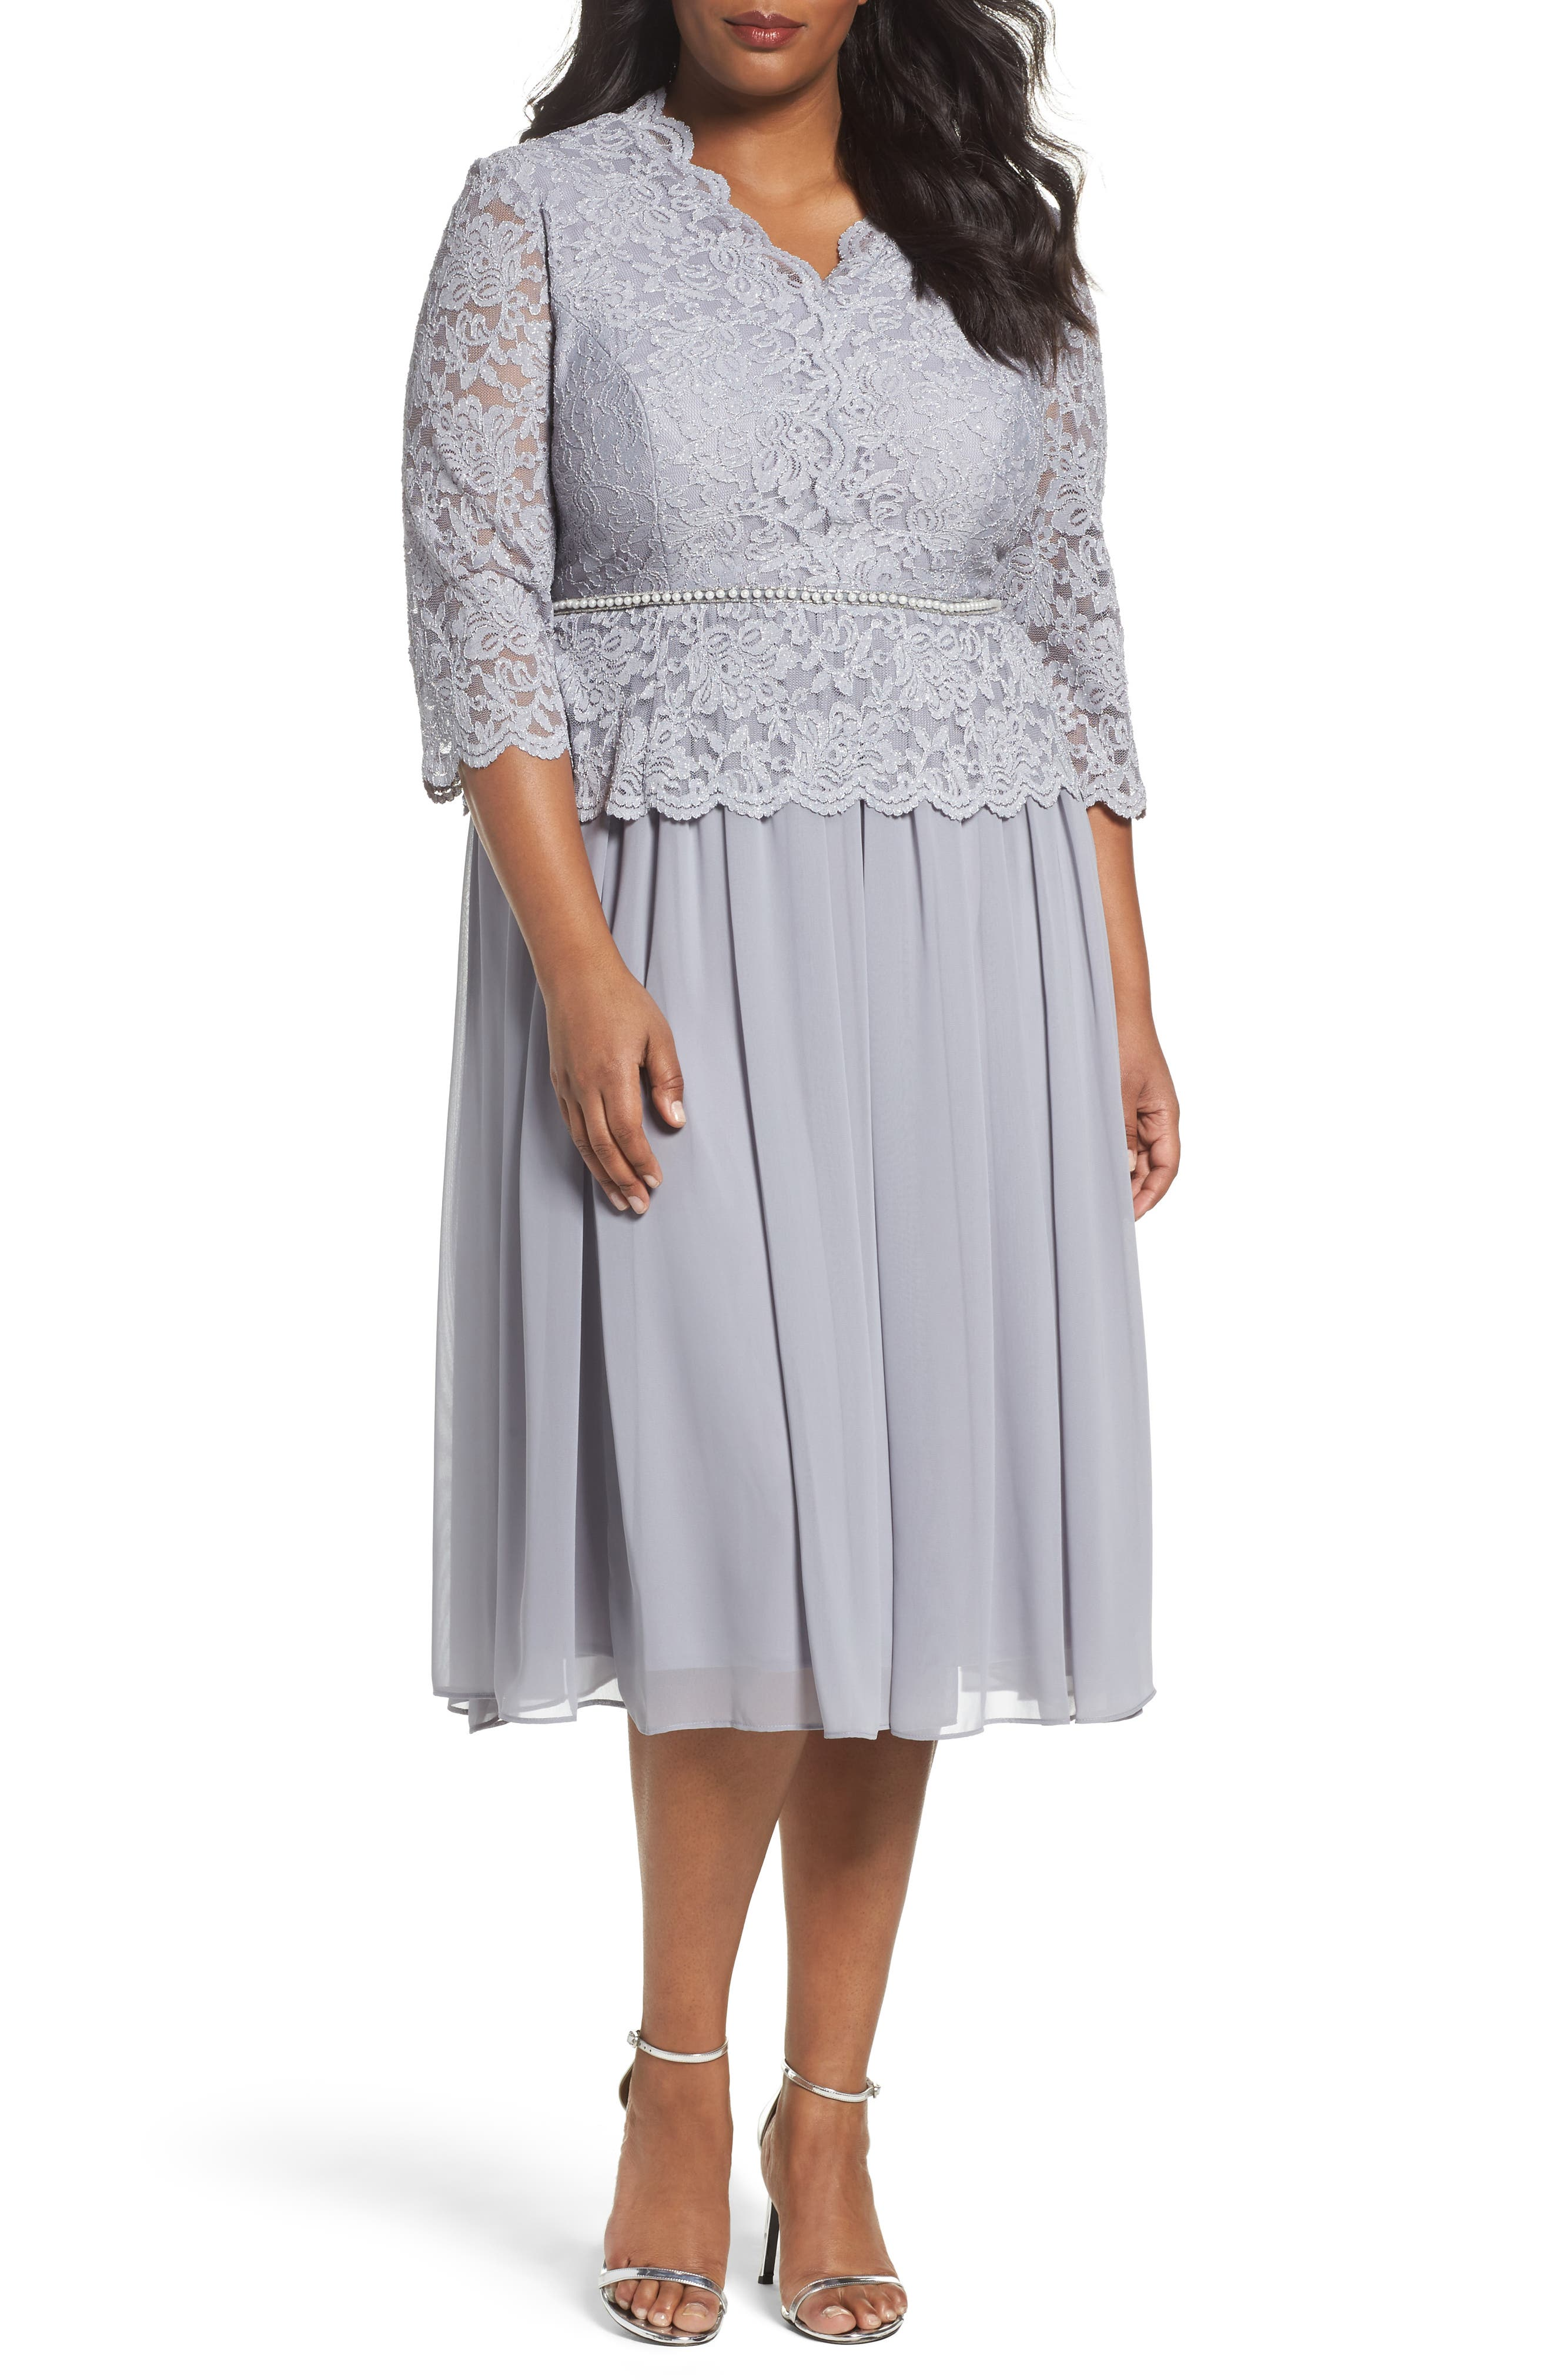 Alex Evenings Embellished Mock Two-Piece Tea Length Dress (Plus Size)